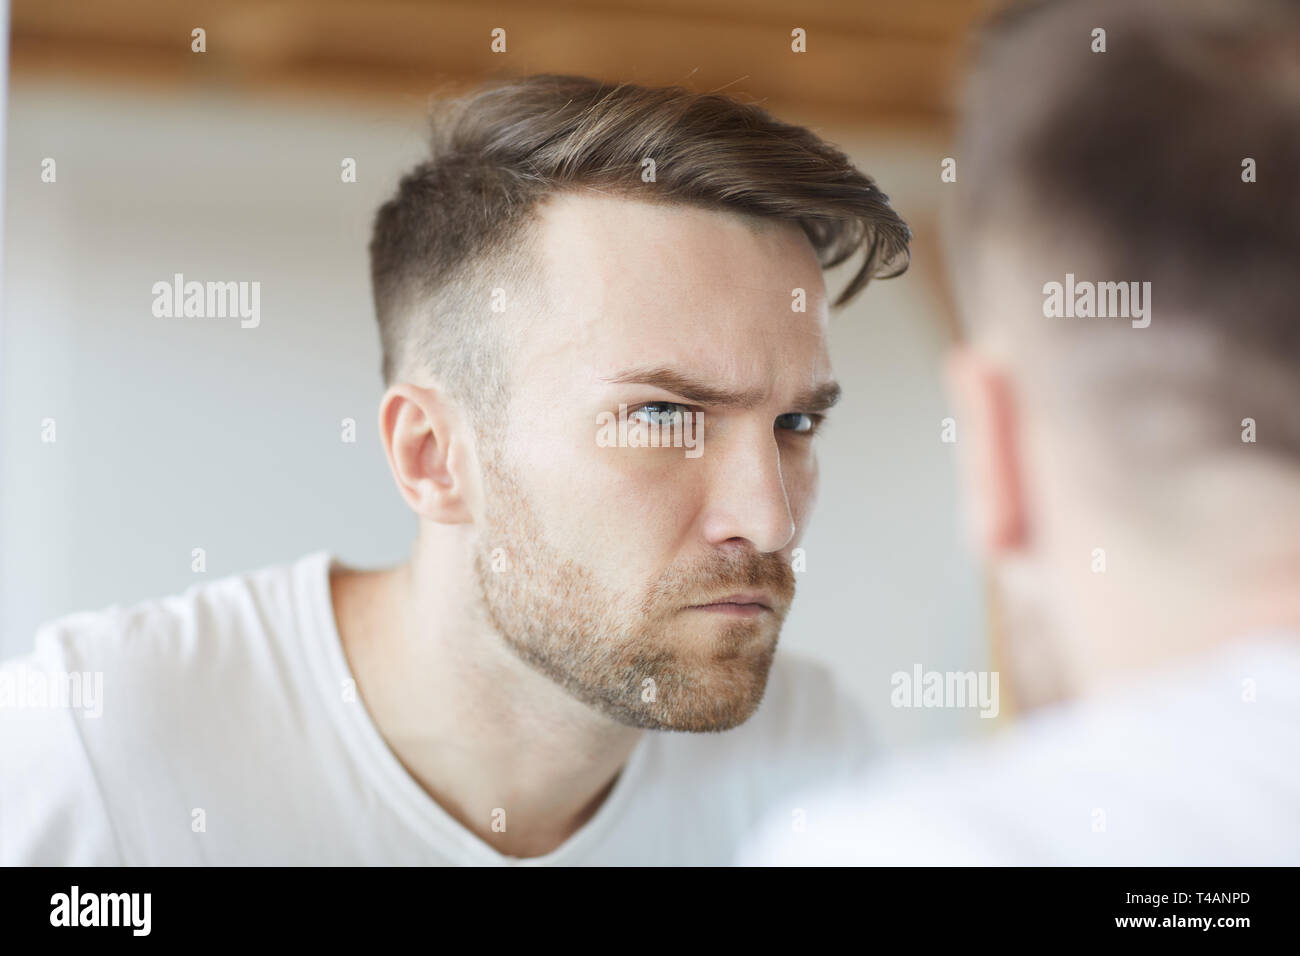 Frowning Man Looking in Mirror - Stock Image